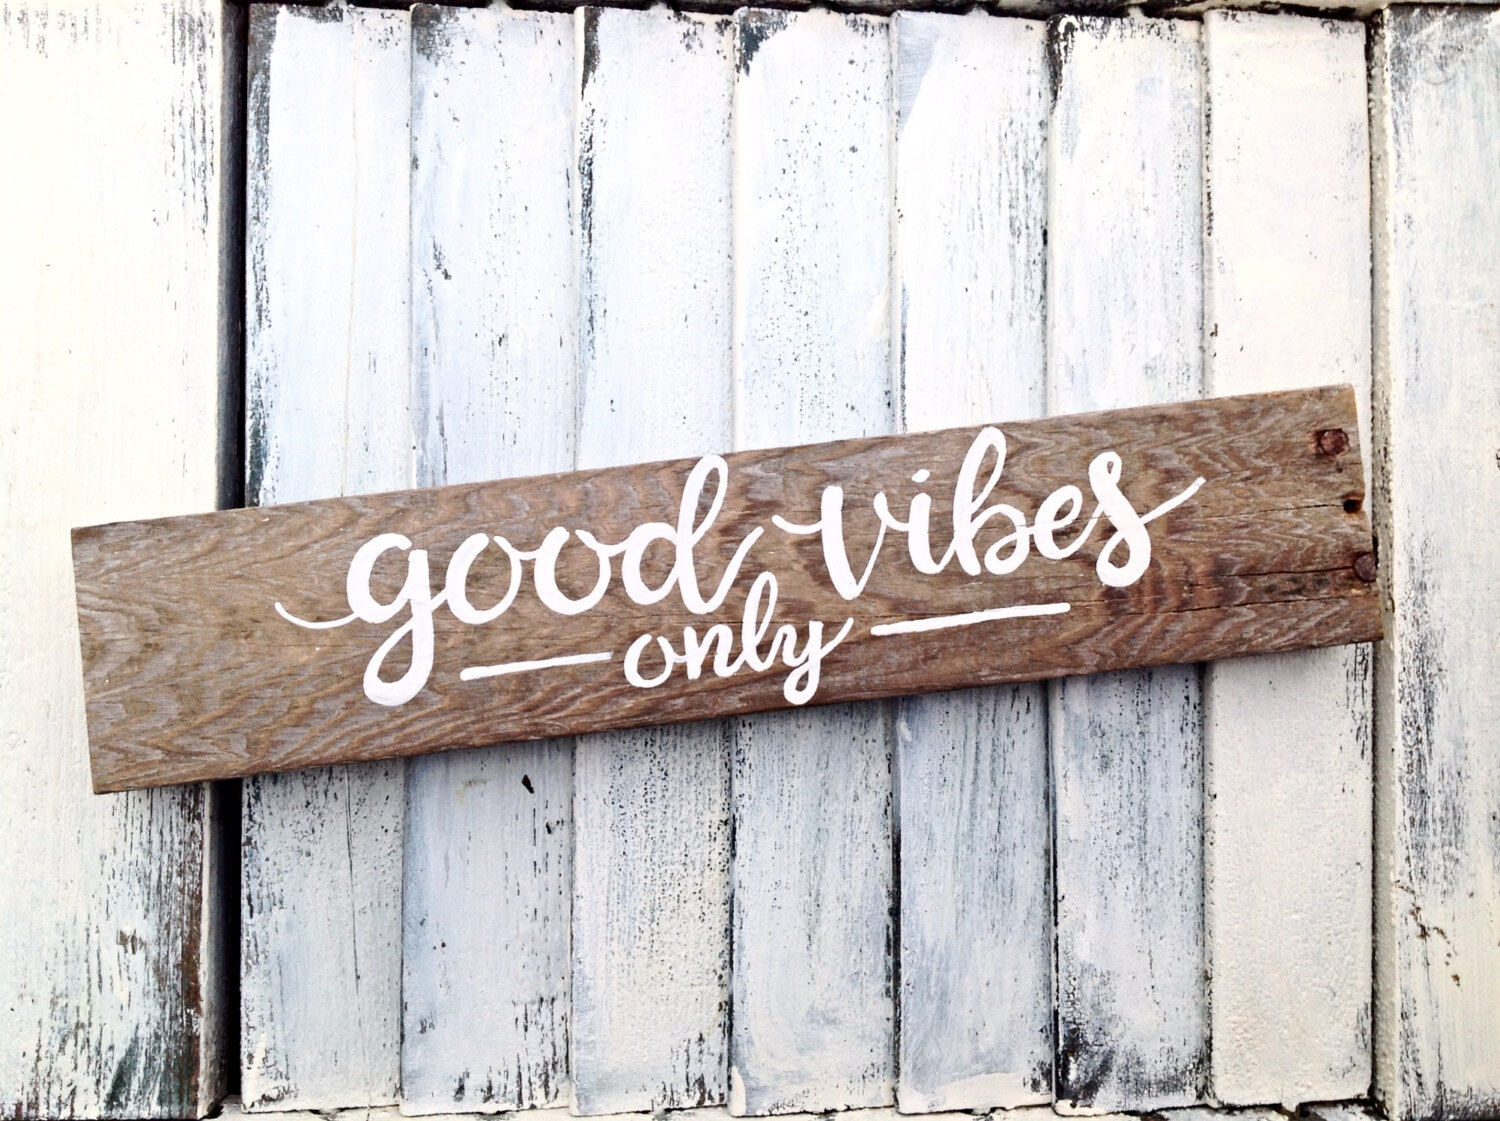 GoodVibes, Only.